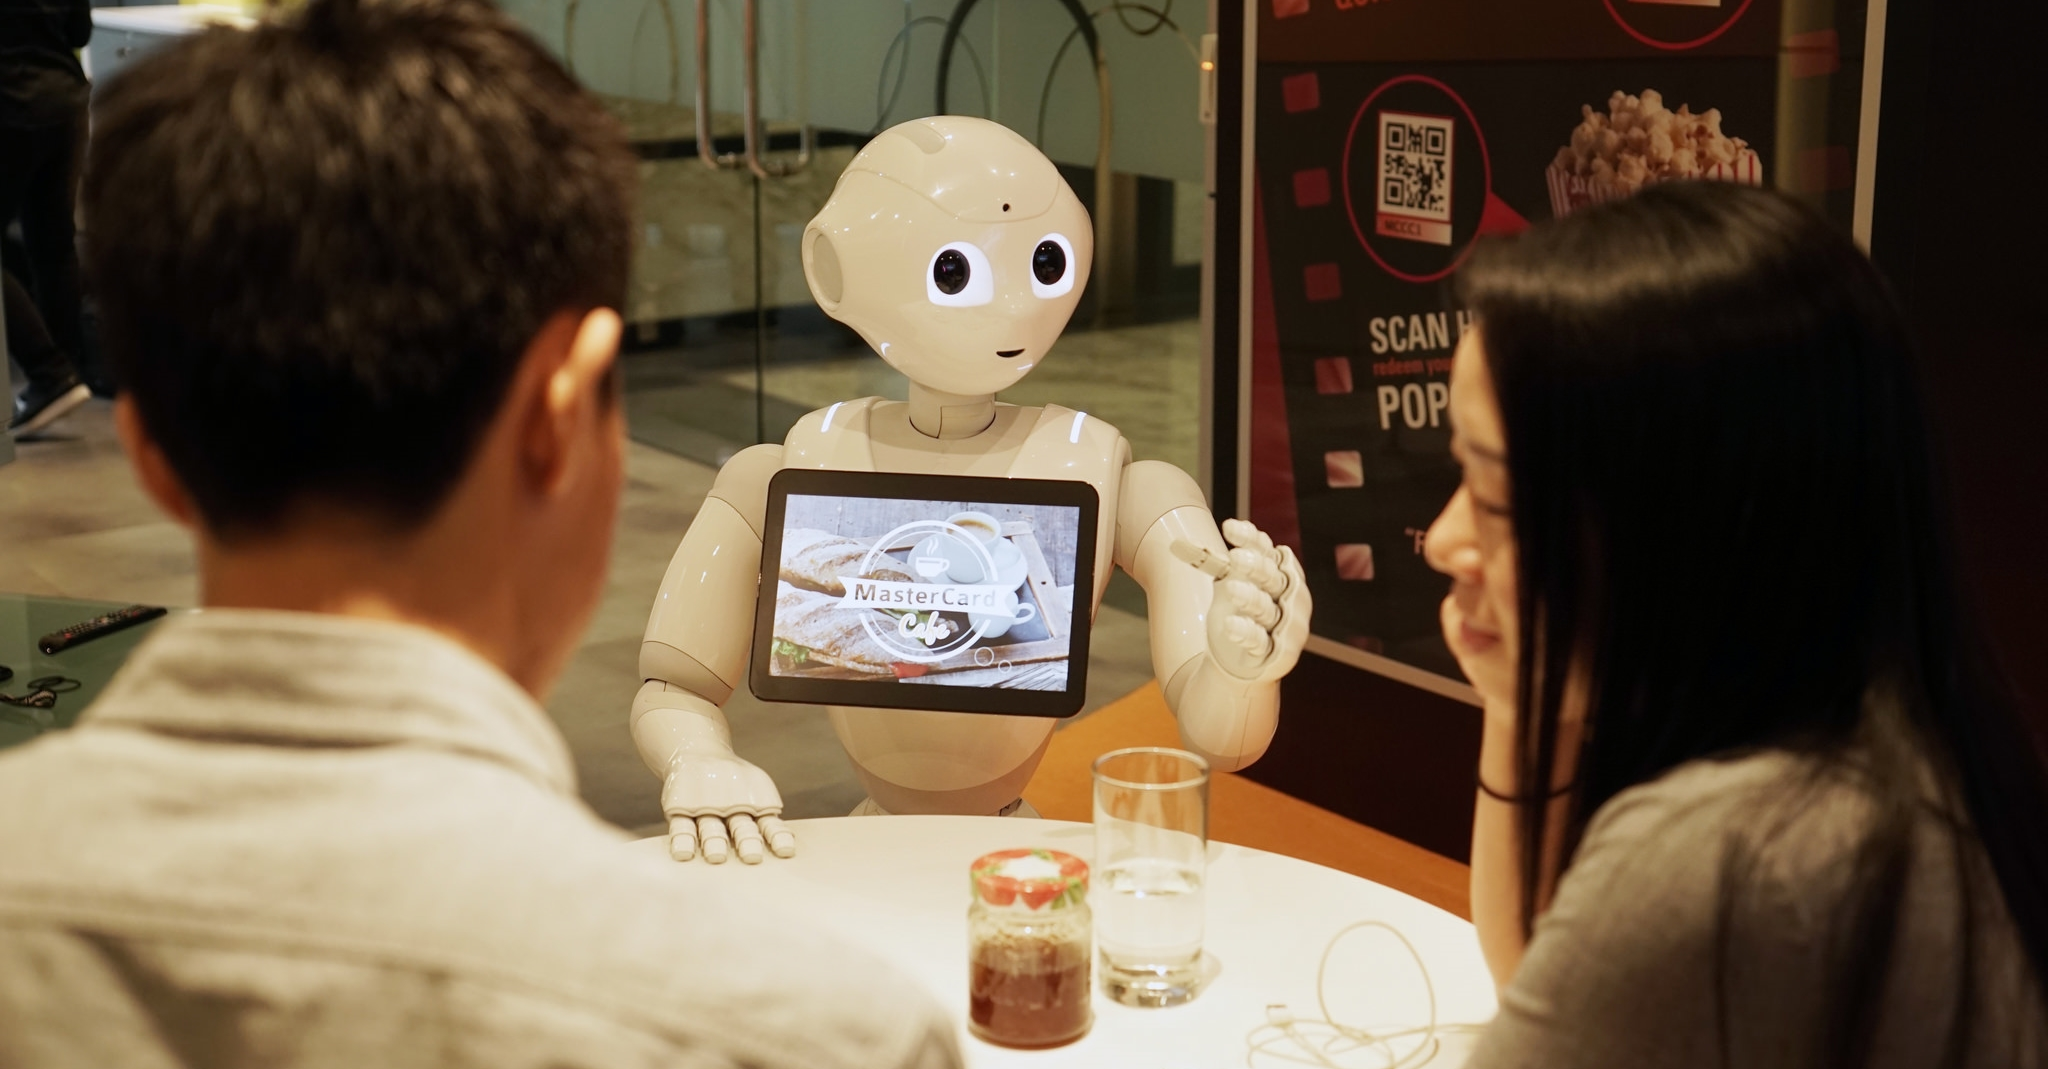 Pizza Hut Asia Hires Softbank's Pepper Robot for Customer Service